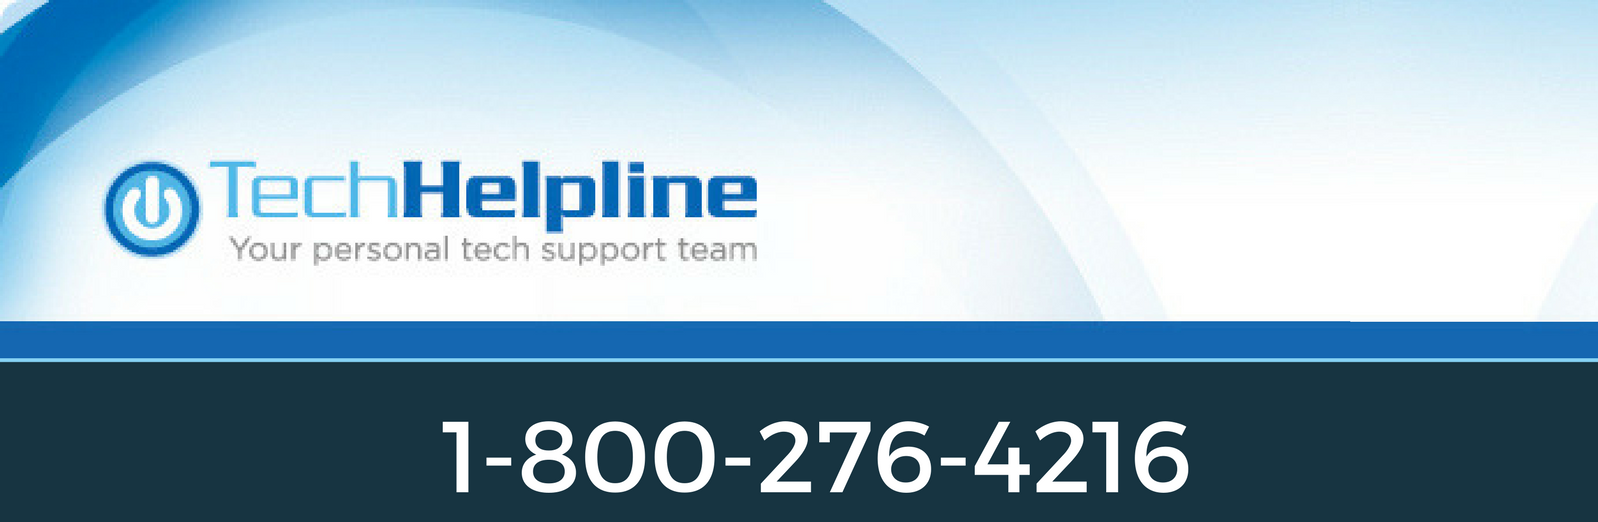 Tech Helpline Banner